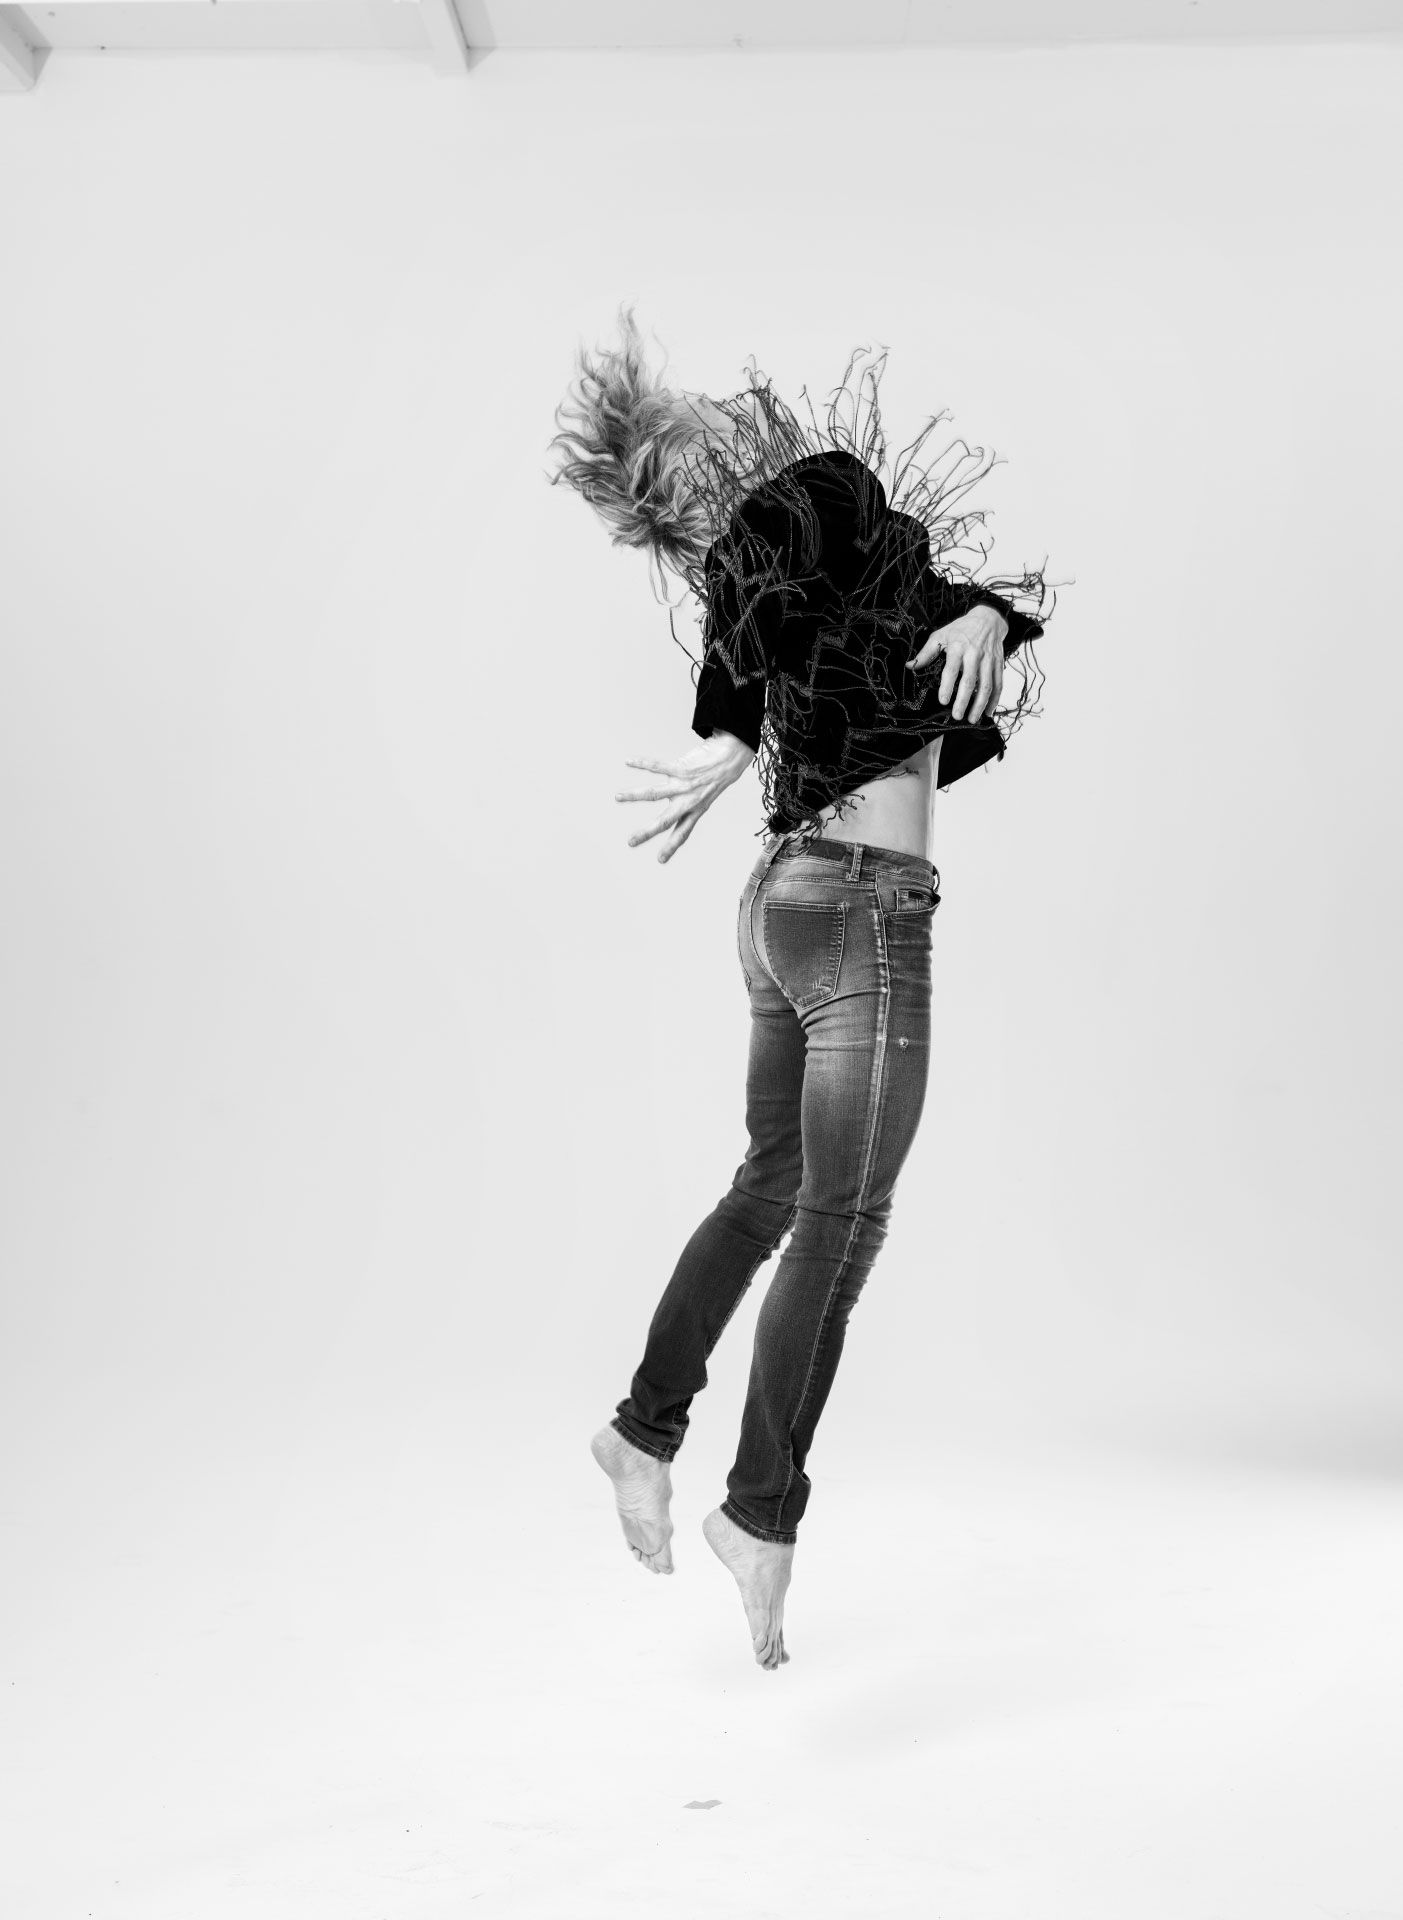 Full-length black and white photo of Louise Lecavalier jumping.